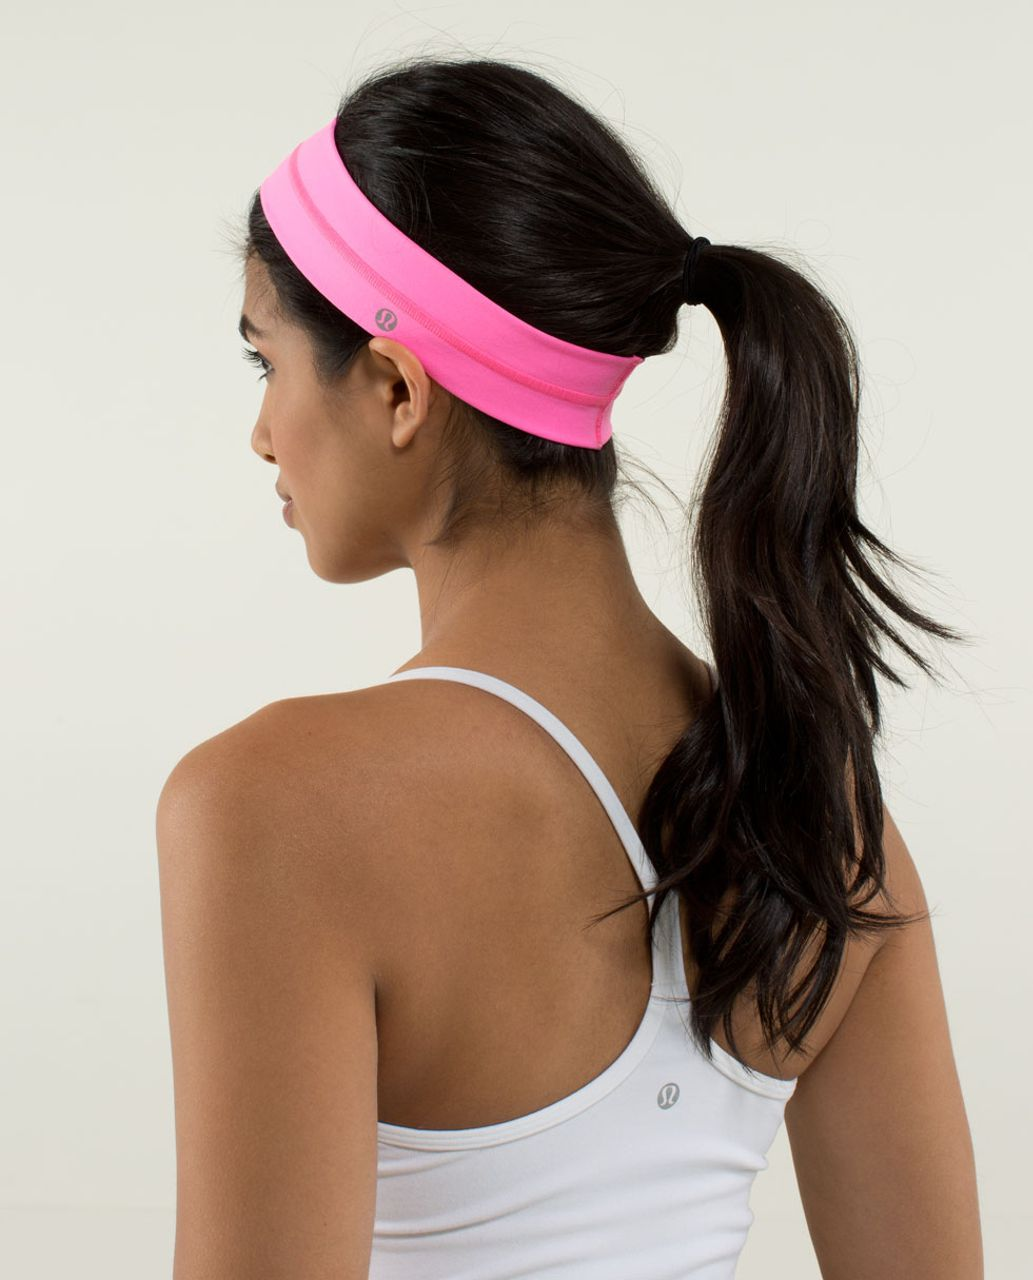 Lululemon Fly Away Tamer Headband - Zing Pink Light